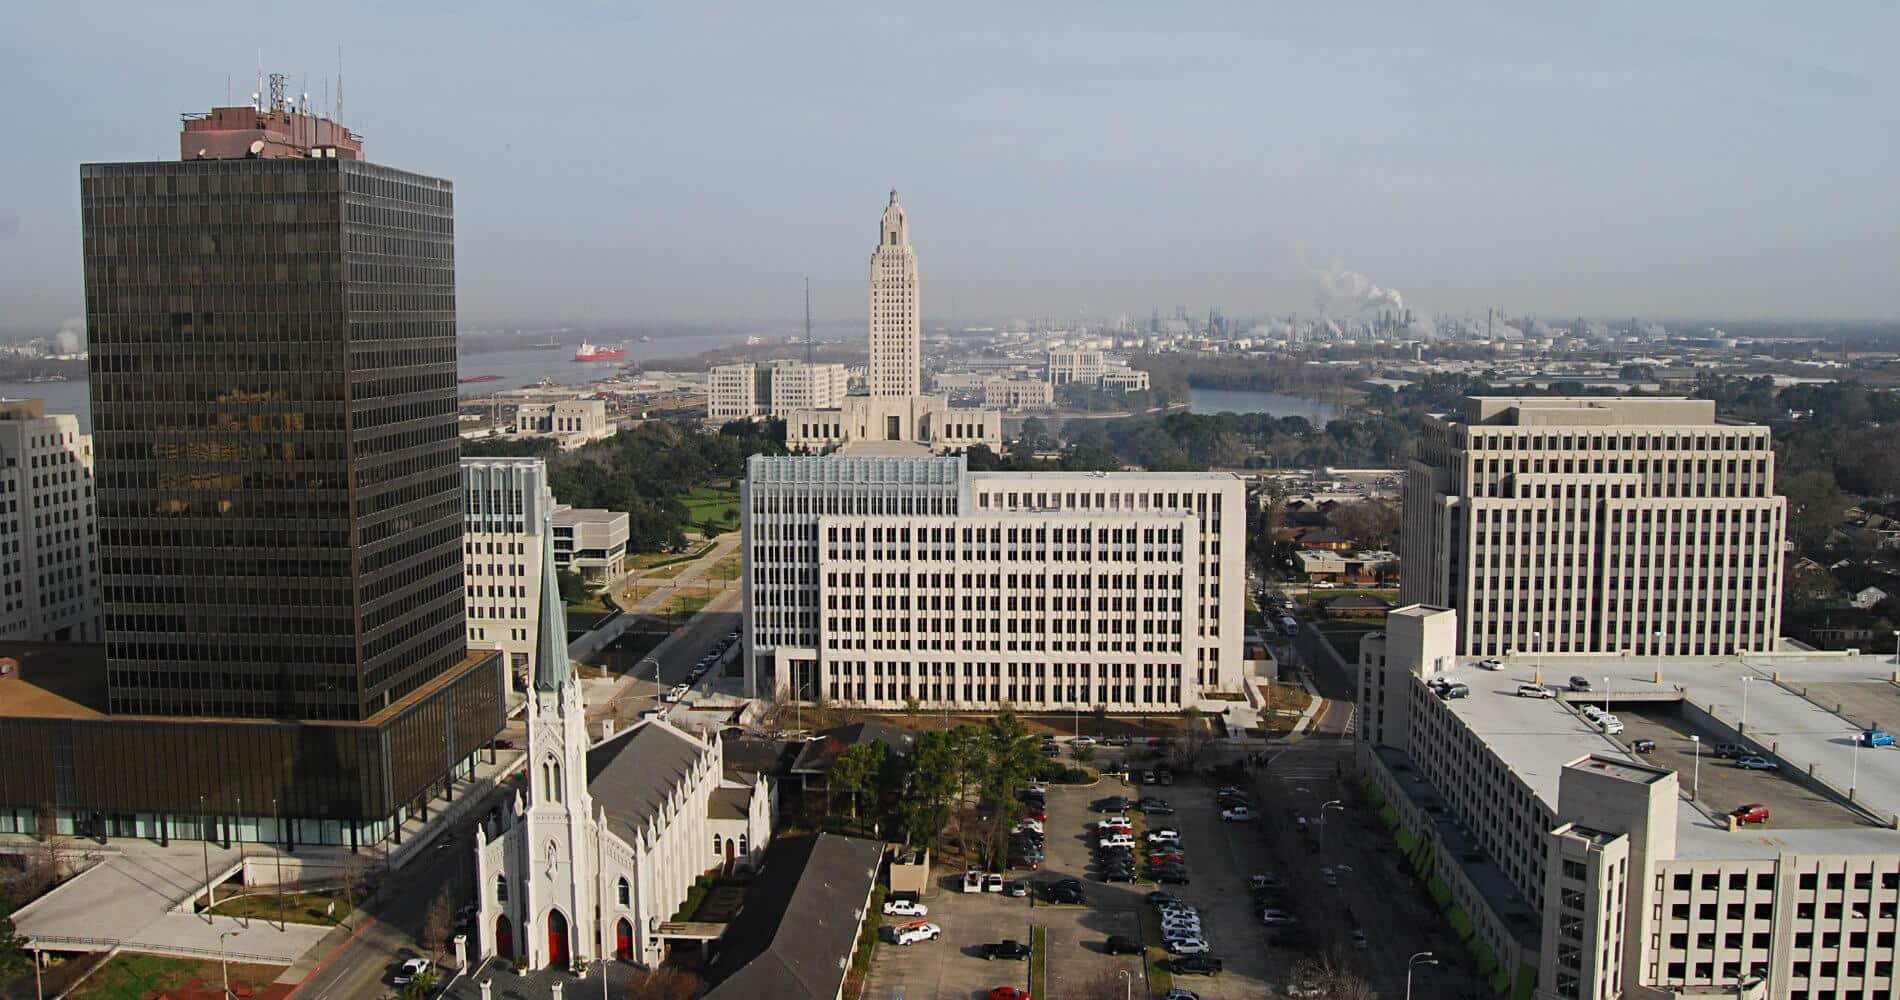 Ariel view of the city of Baton Rouge, Louisiana - large buildings with an ornate white cathedral